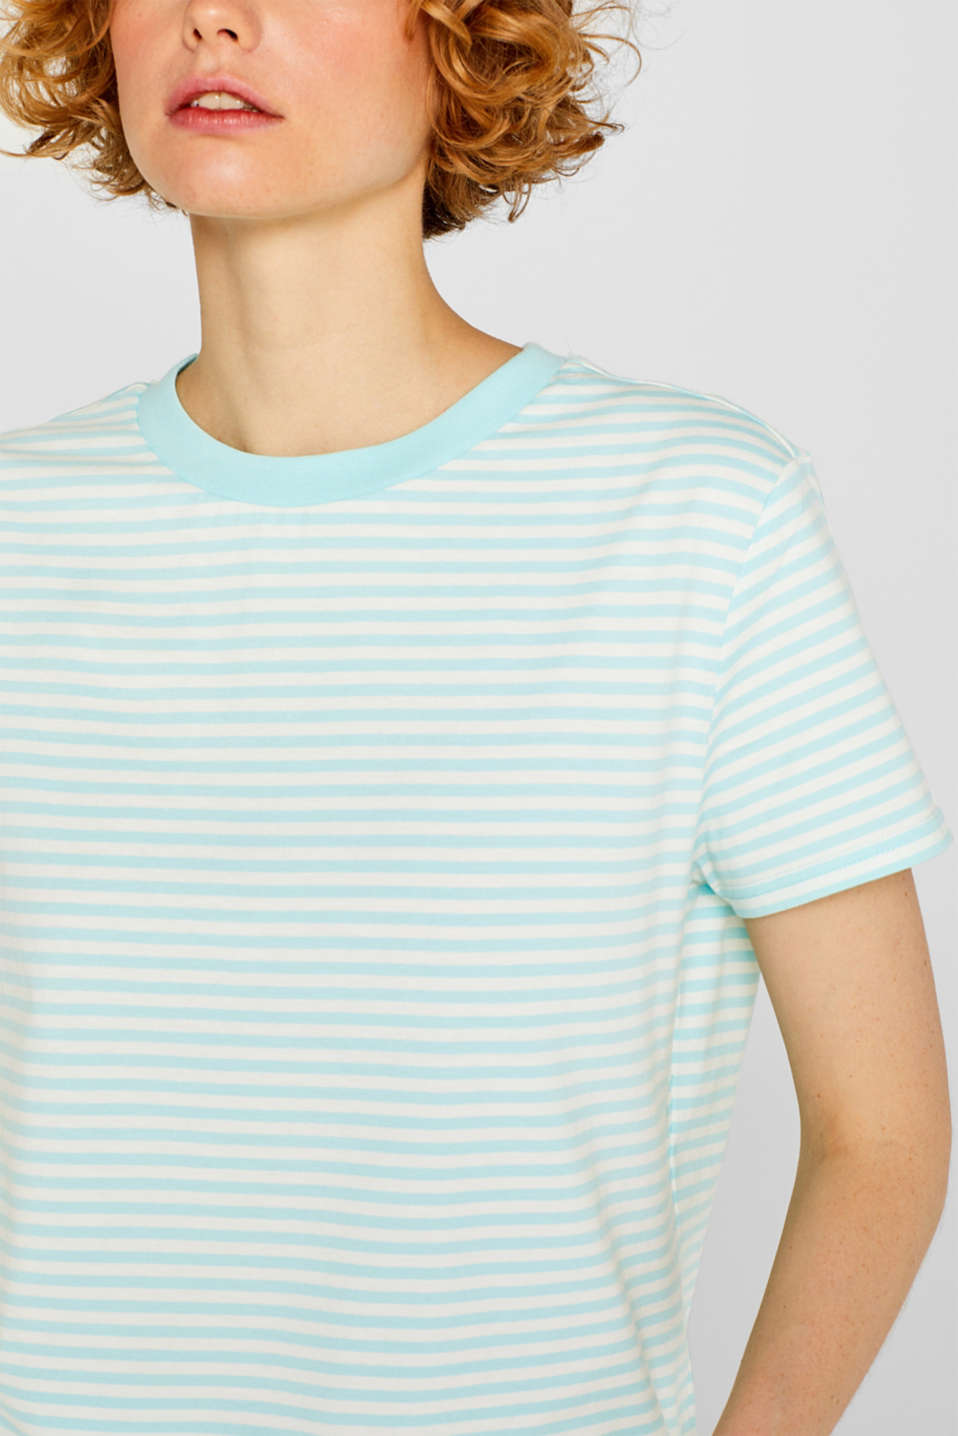 Top with a striped pattern, 100% cotton, AQUA GREEN 4, detail image number 2